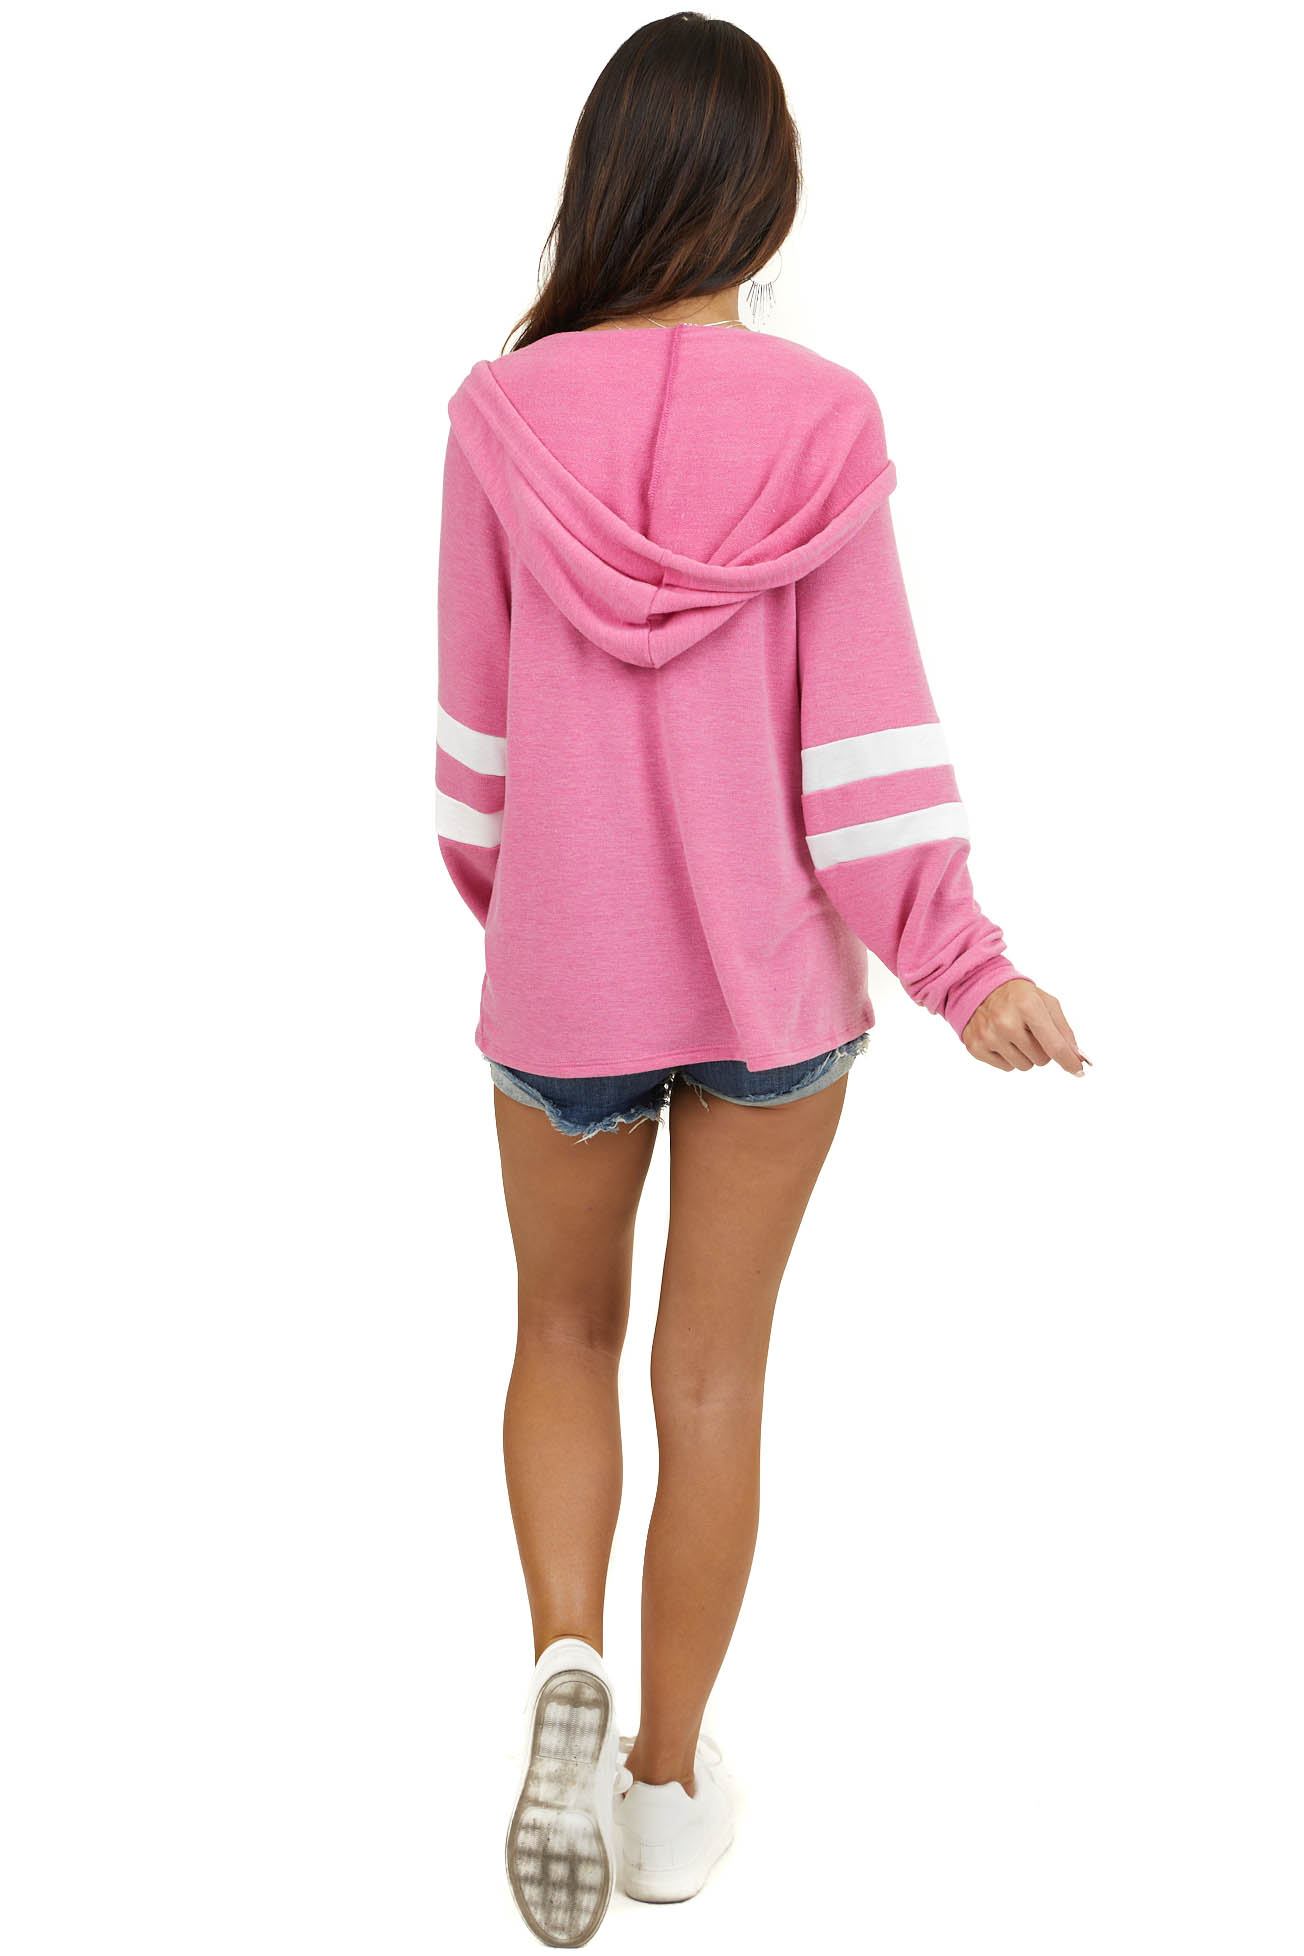 Heathered Hot Pink Knit Hoodie with Striped Sleeves